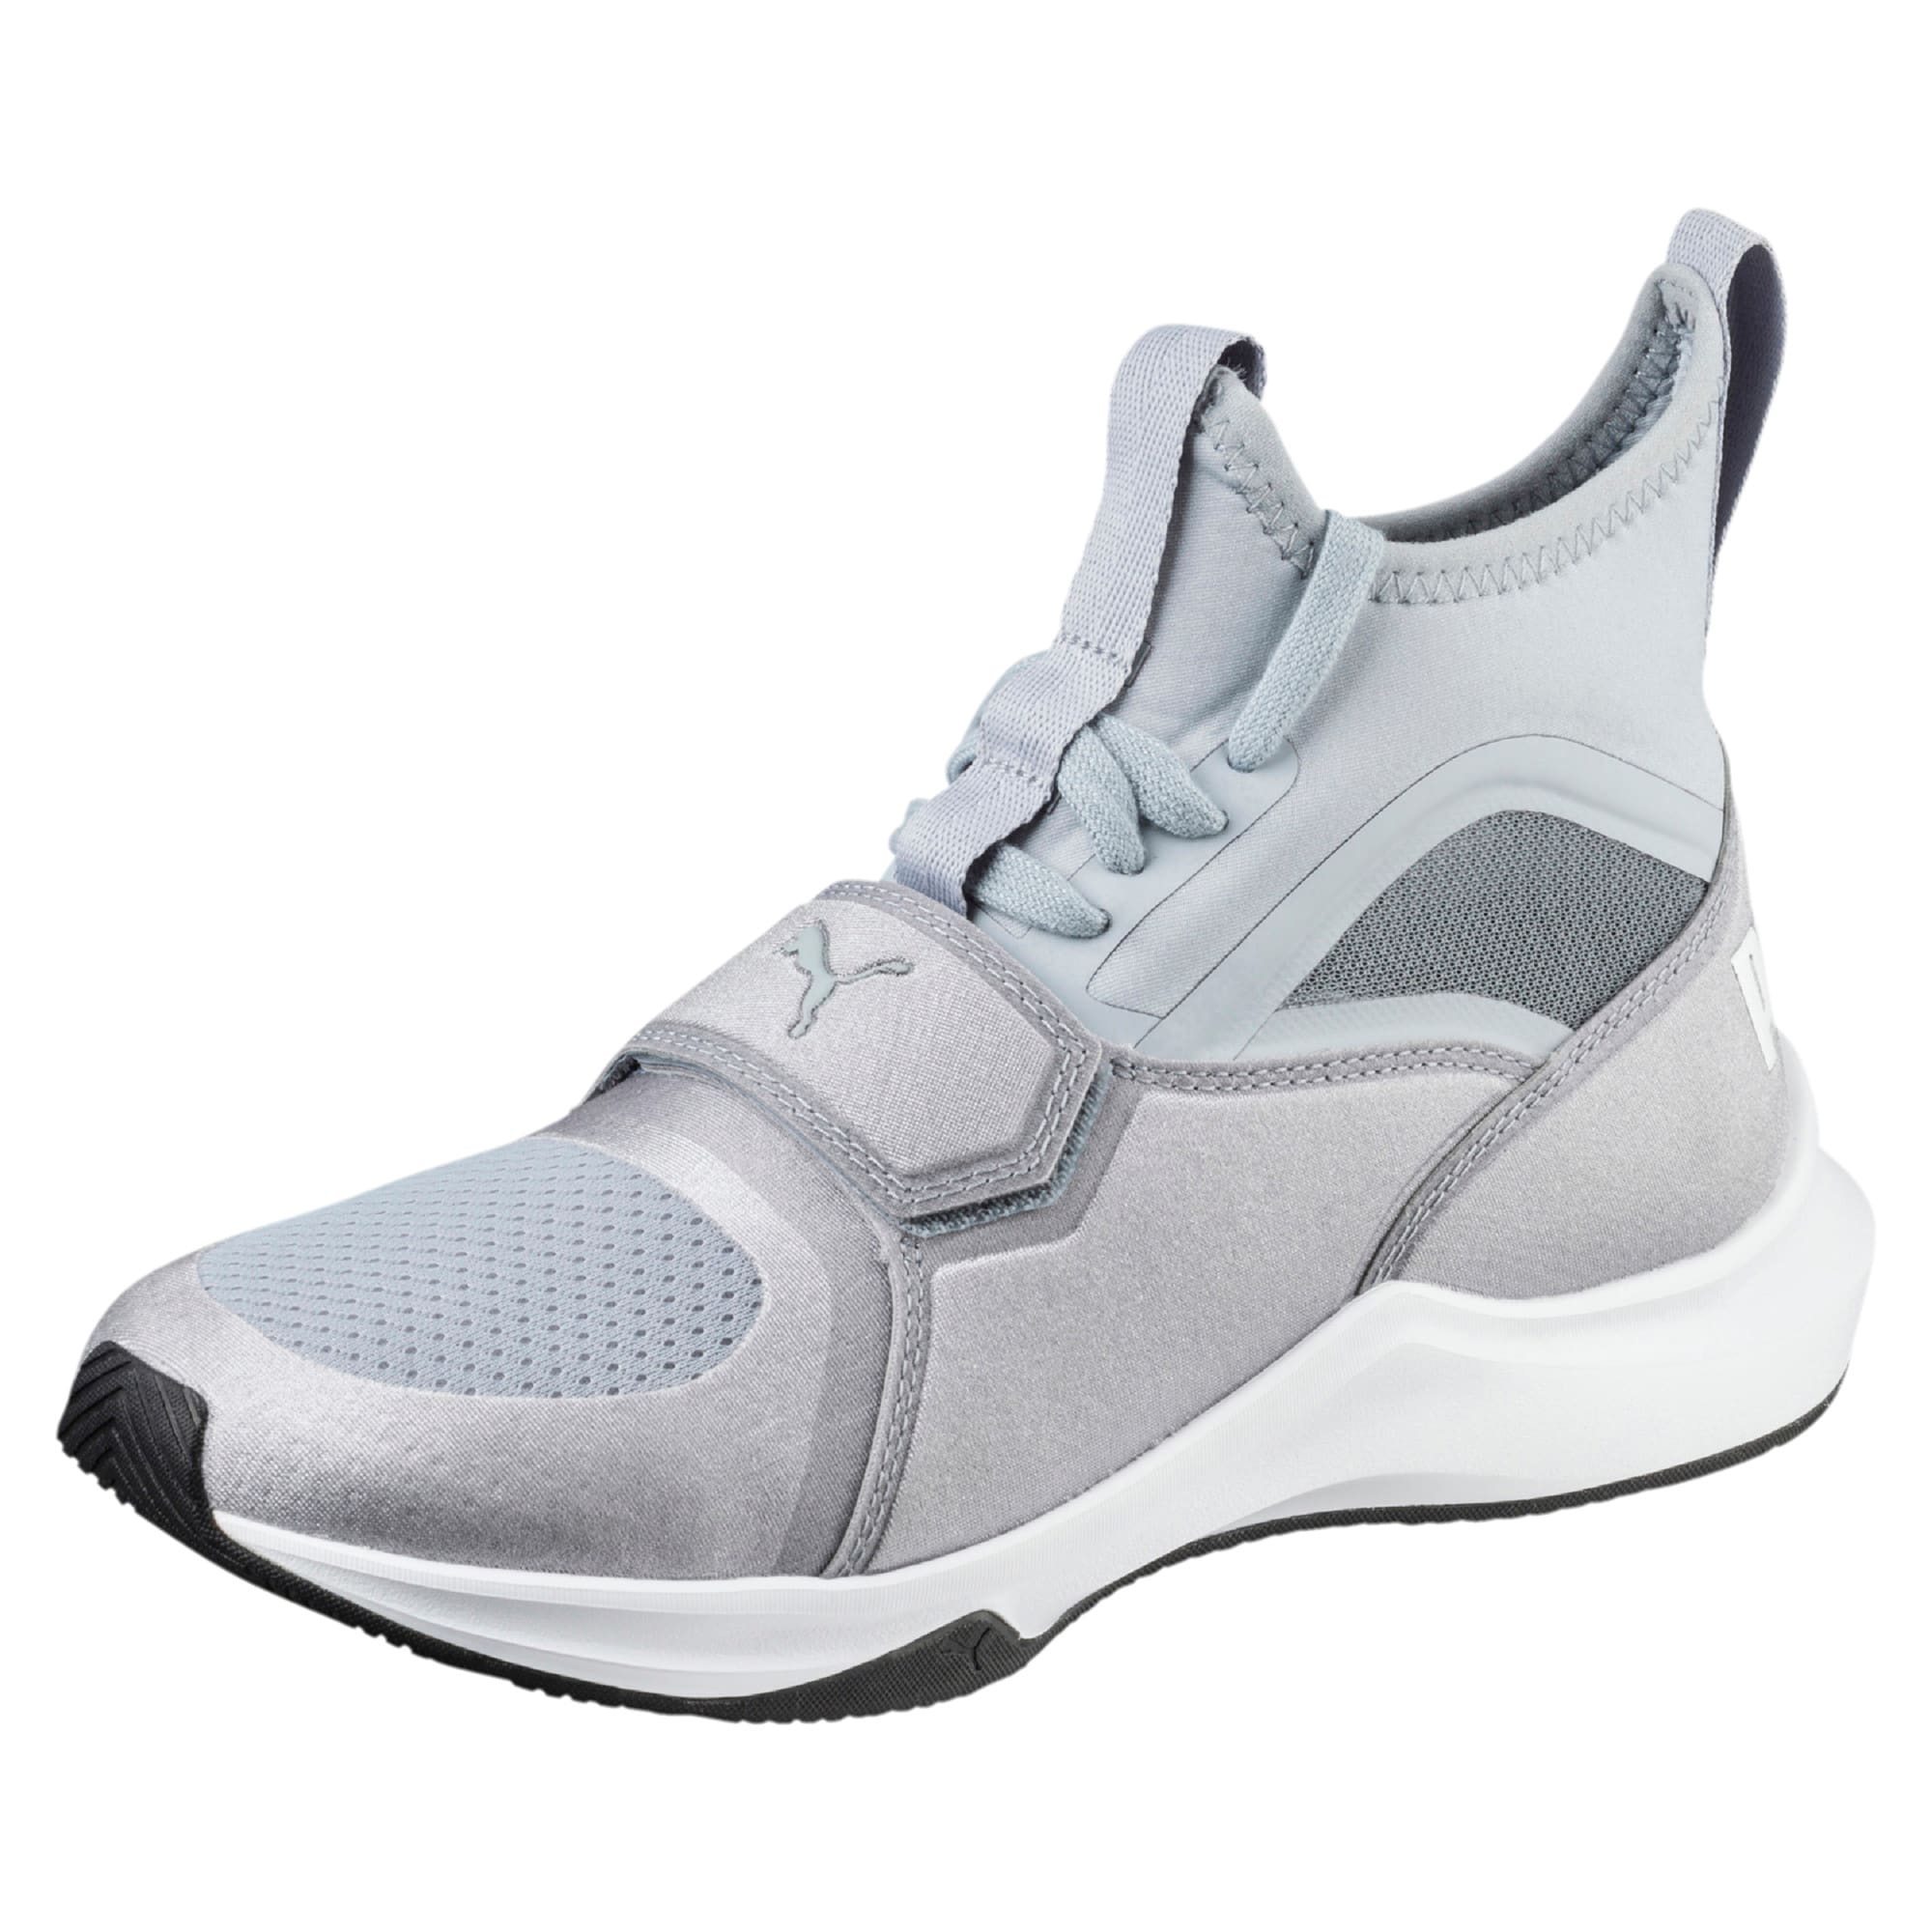 Thumbnail 1 of Phenom Women's Training Shoes, Quarry-Puma White, medium